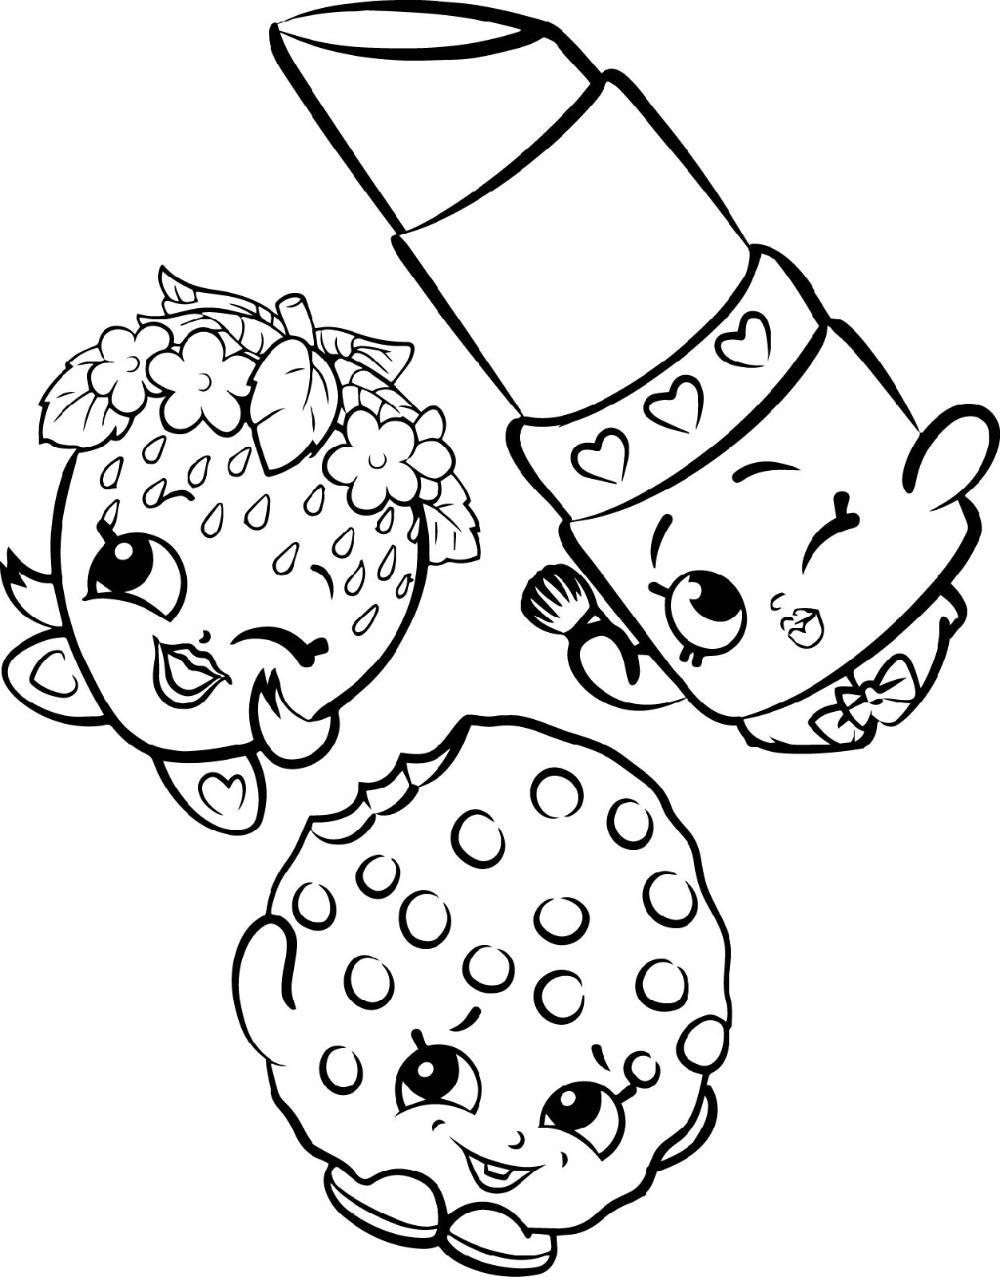 Lippy Lips Coloring Page Printables Elmo Coloring Pages Coloring Pages Coloring Sheets For Boys